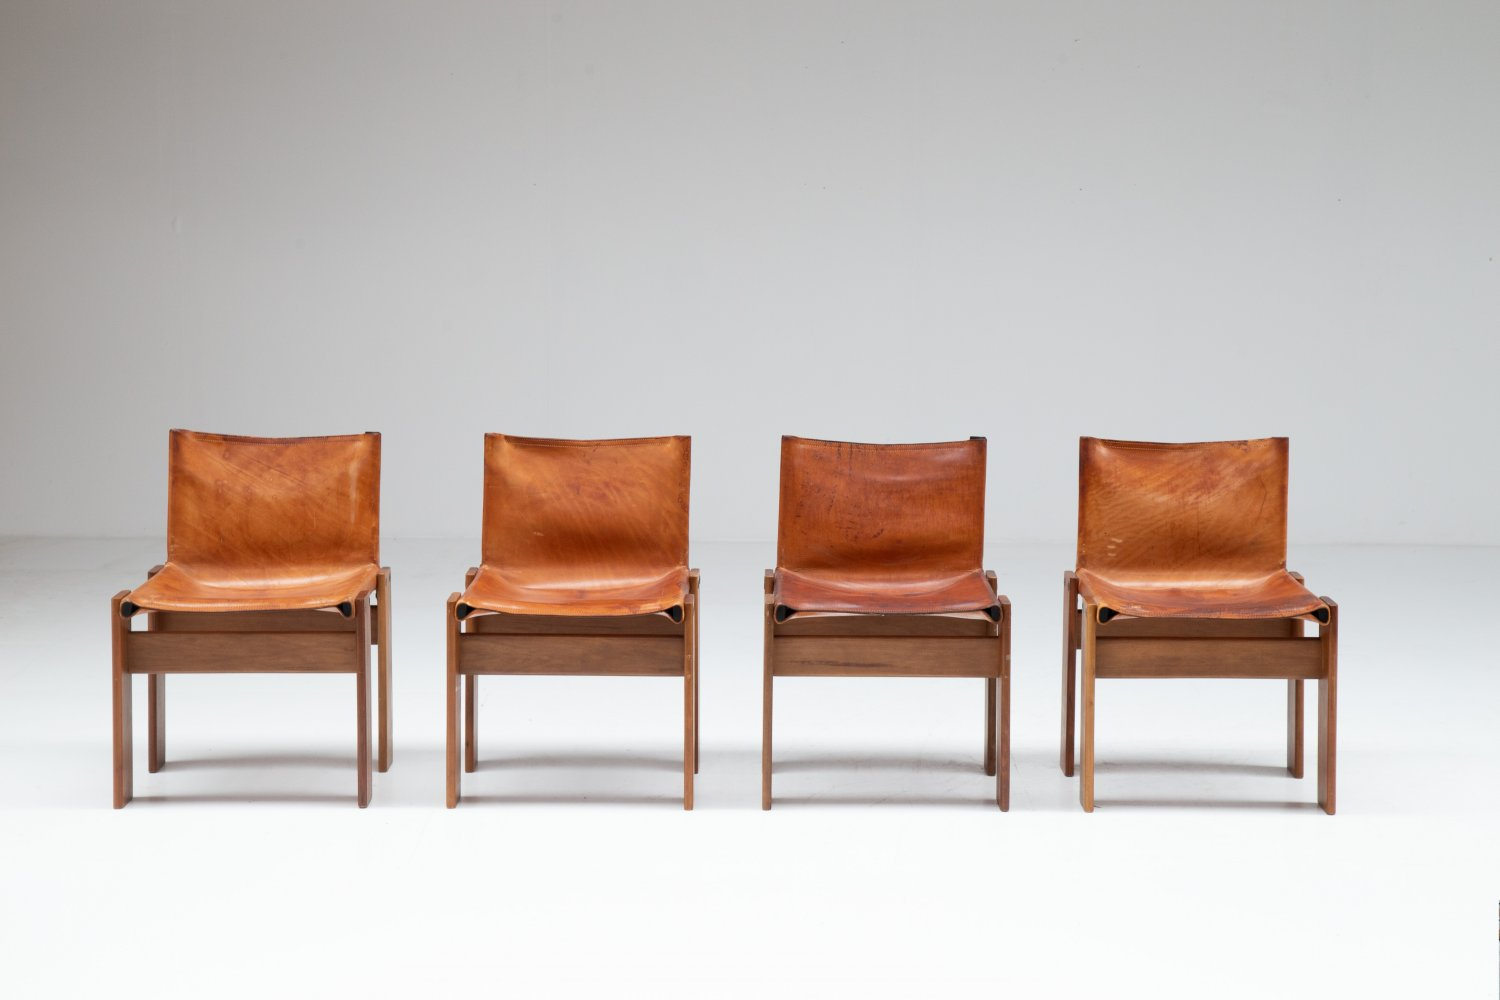 4 Monk chairs Tobia & Afra Scarpa for Molteni